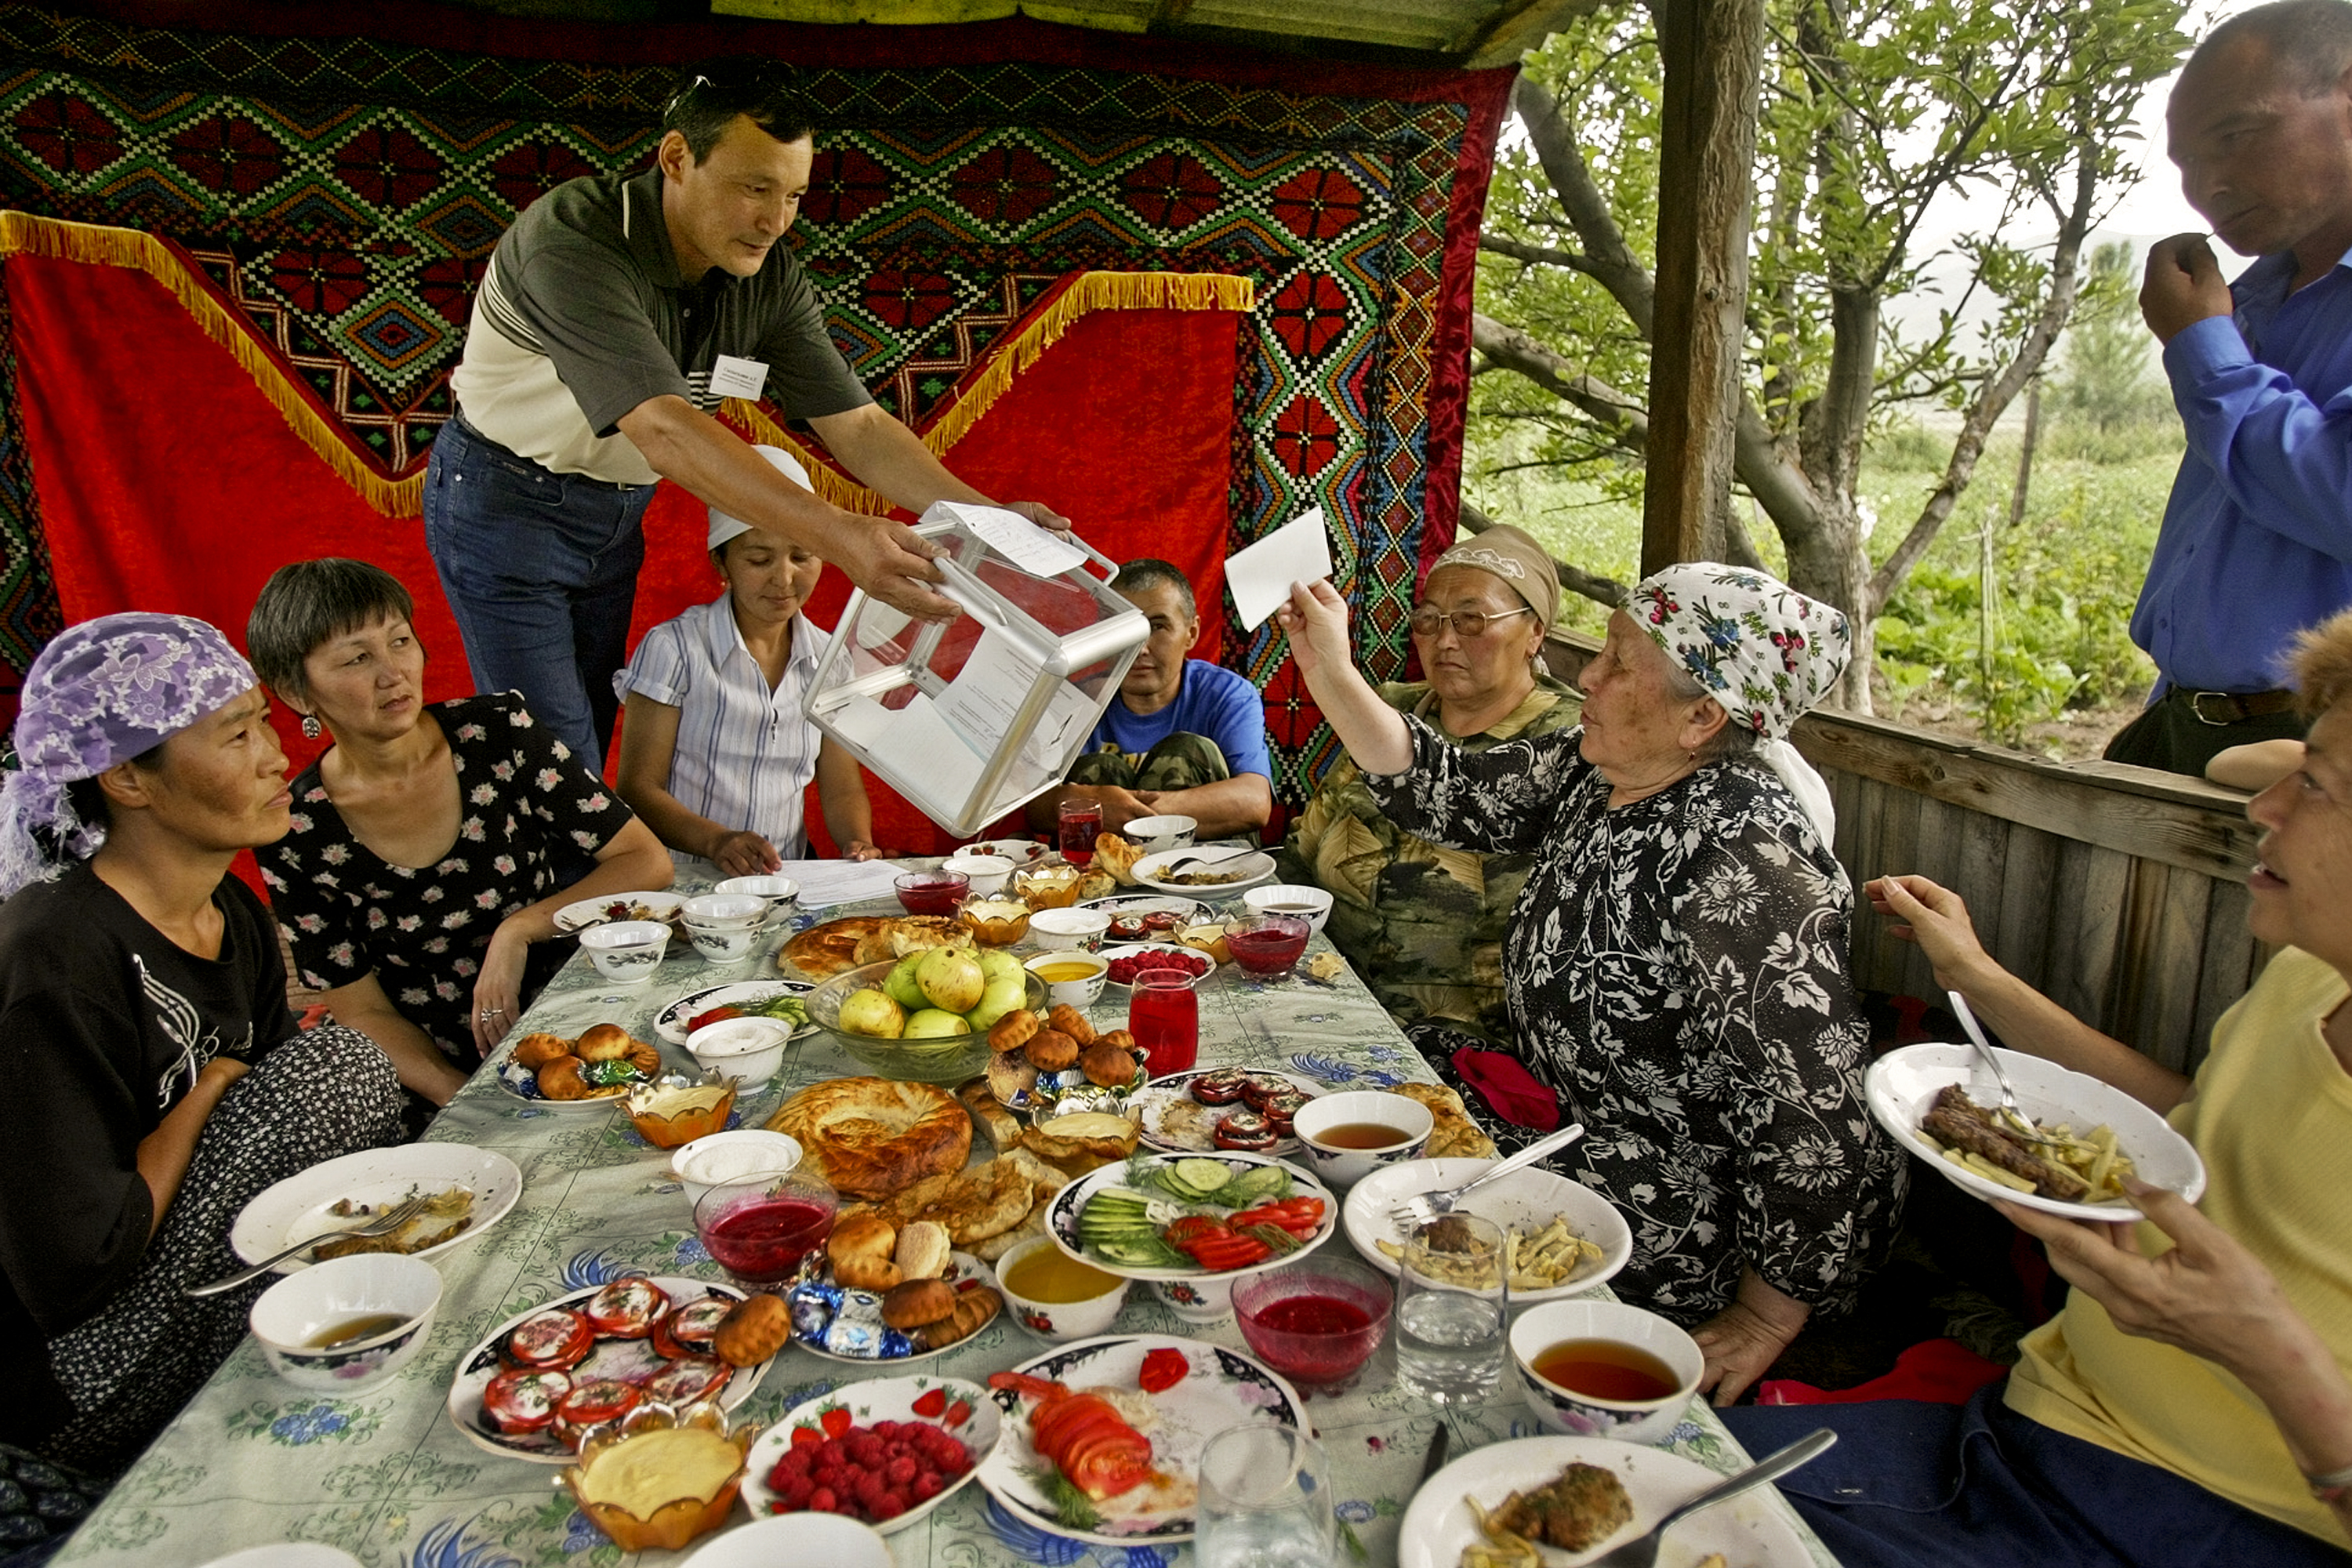 In Kyrgyzstan, Toktobubu Jantaliyeva (third from right) casts a presidential ballot as she and her relatives have lunch in their country house in the village of Gornaya, 2005.